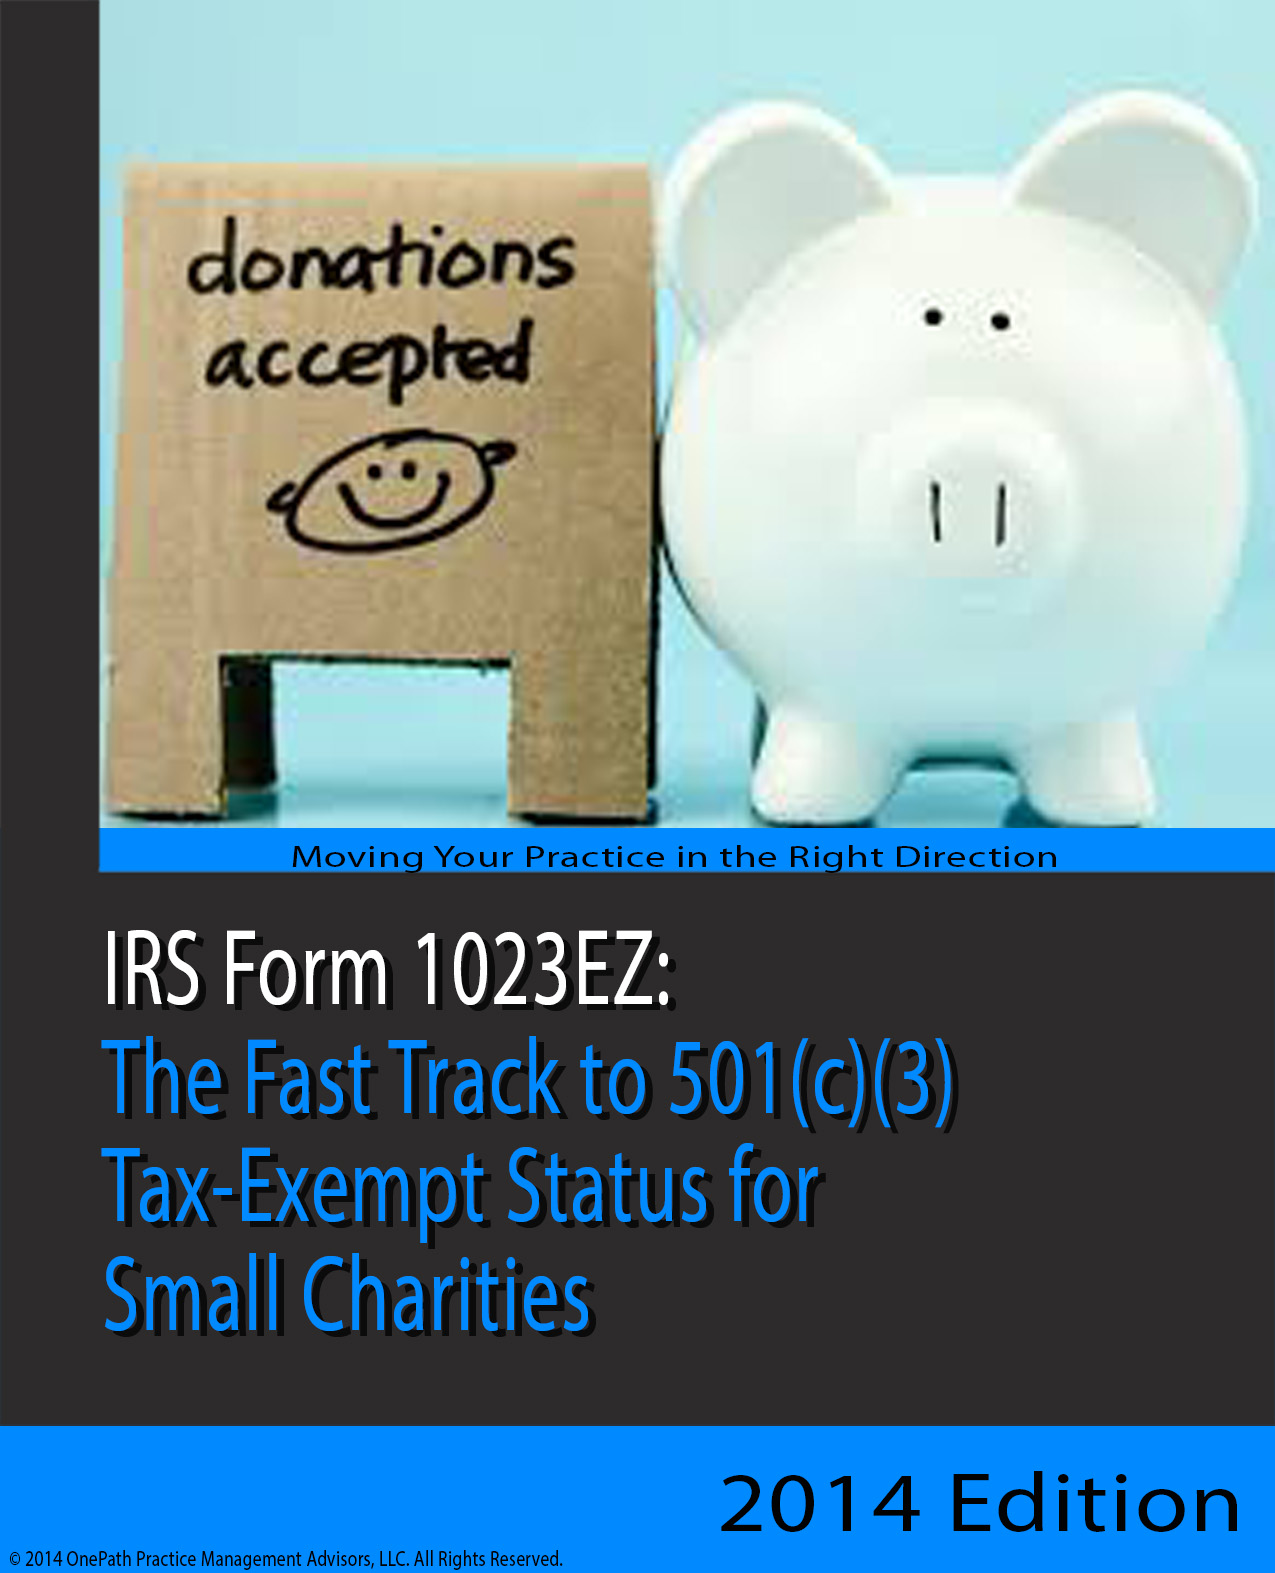 IRS Form 1023EZ: The Fast Track To 501(c)(3) Tax-Exempt